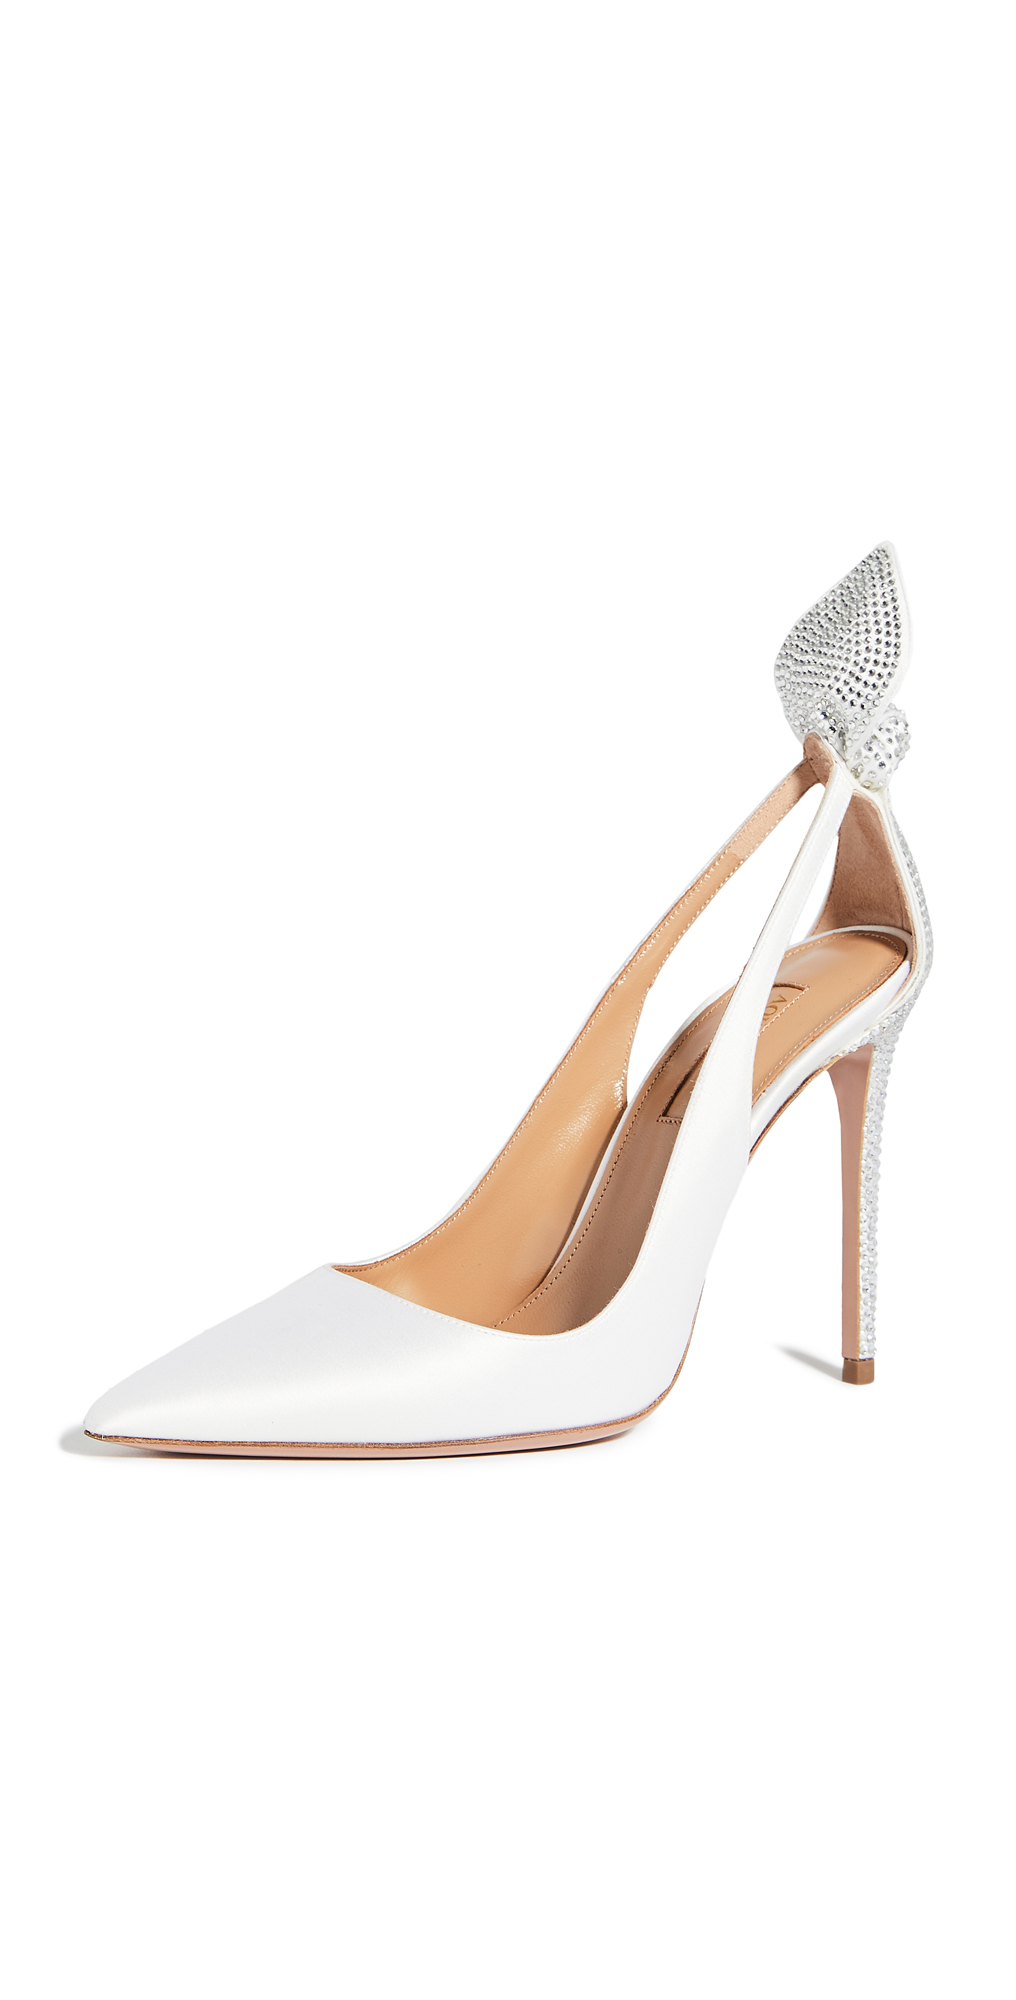 Aquazzura Bow Tie Crystal Pump 105mm